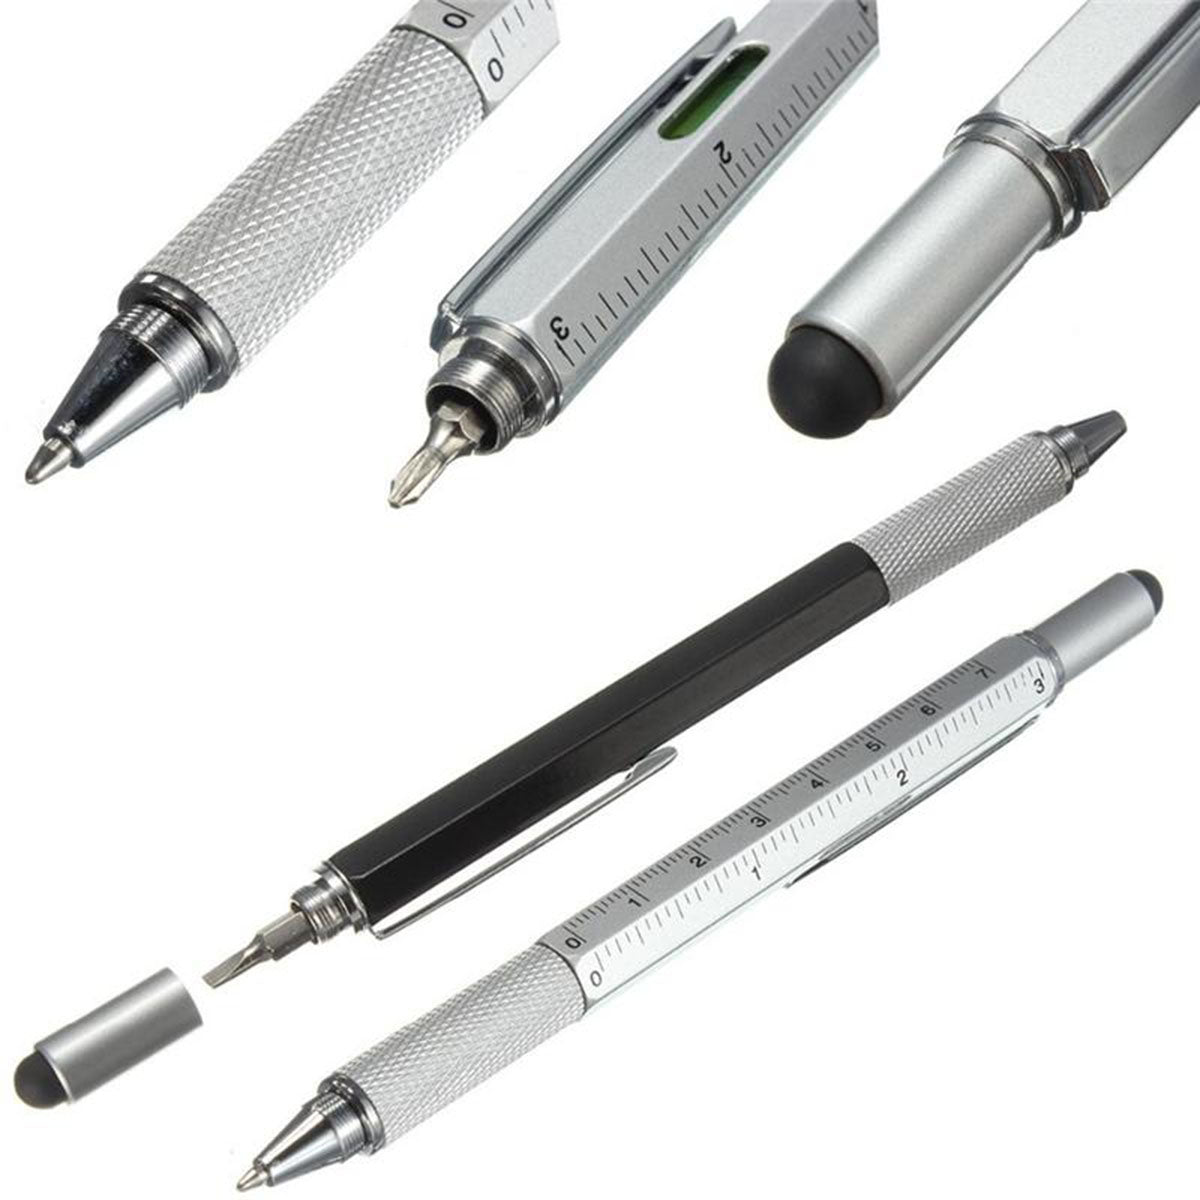 5 in 1 Multi-Functional Tool Pen